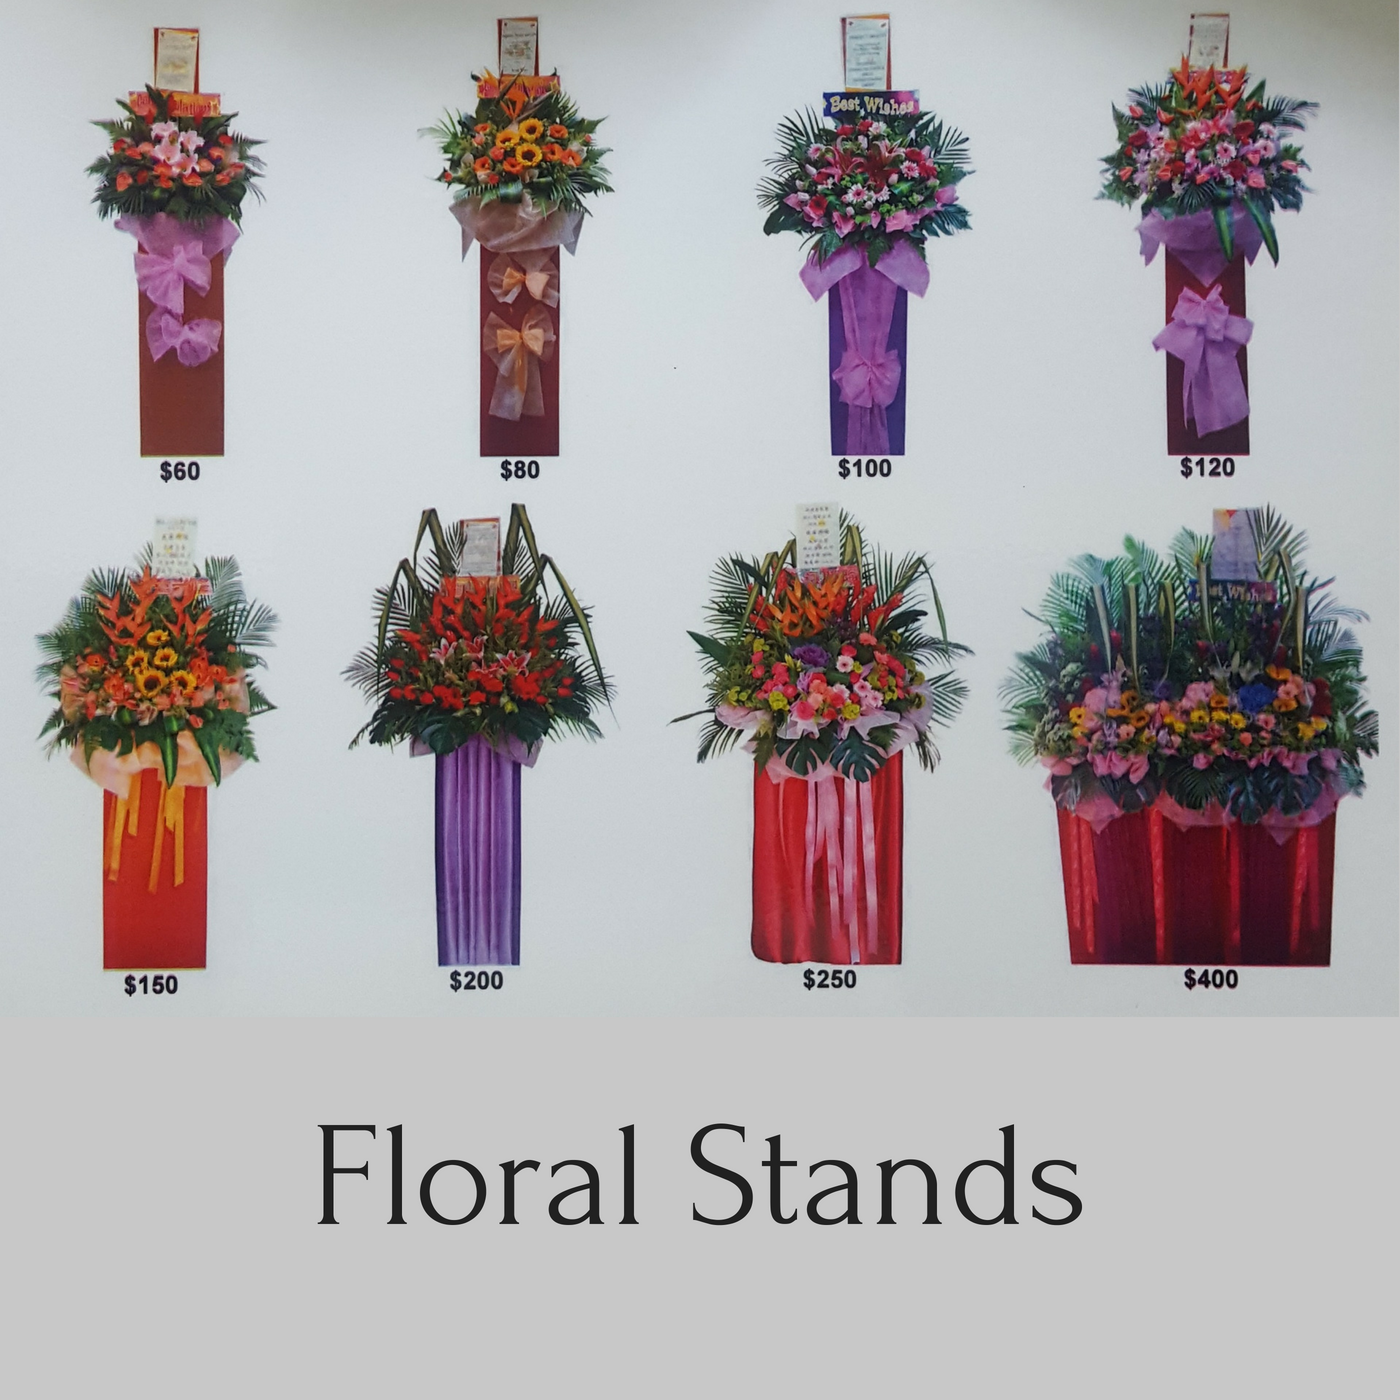 Floral Stands